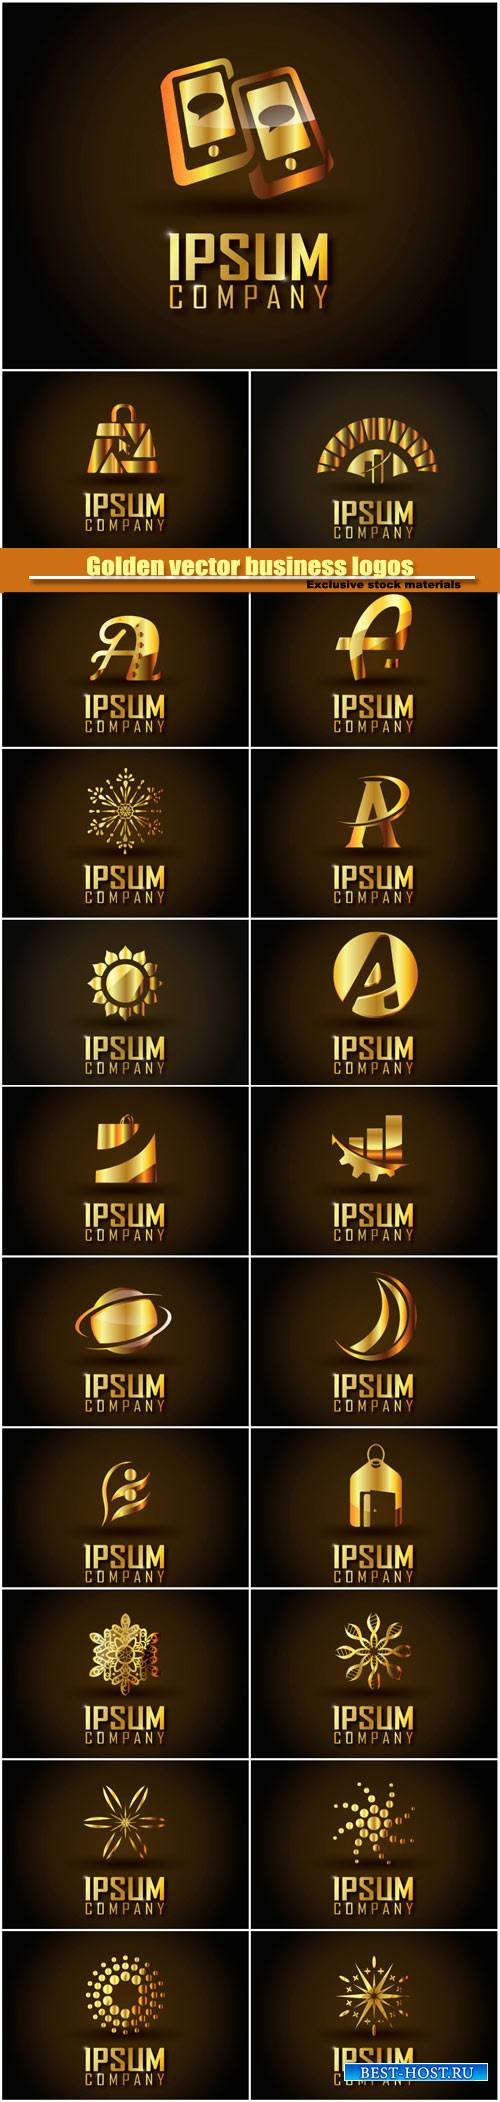 Golden vector business logos on a dark background